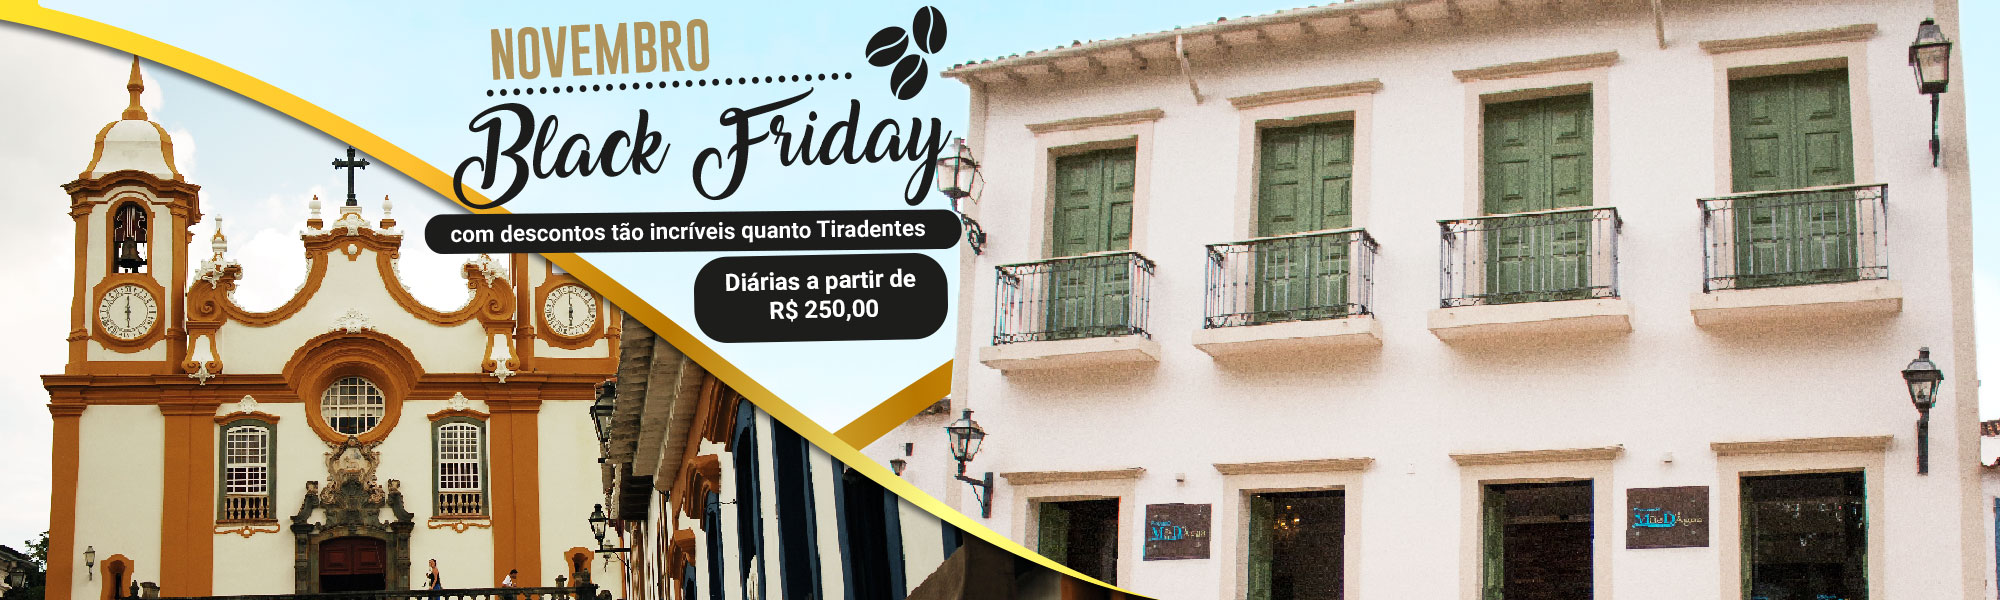 pousadamaedagua_site_black_friday